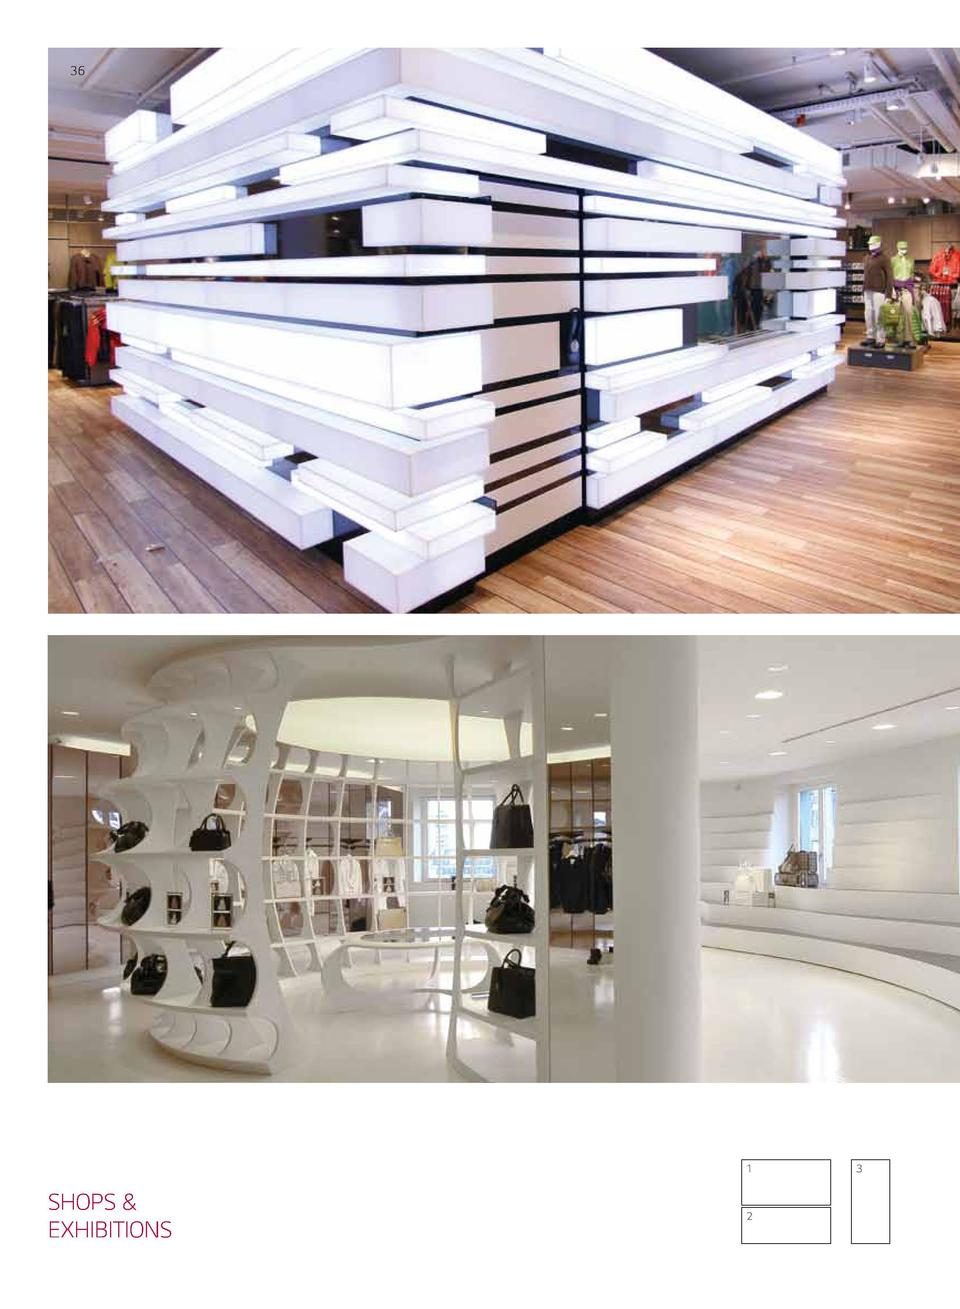 36  37  1  SHOPS   EXHIBITIONS  2  3  1 Globetrotter Location  Munich and Dresden, Germany Design  Holger Moths Fabricator...